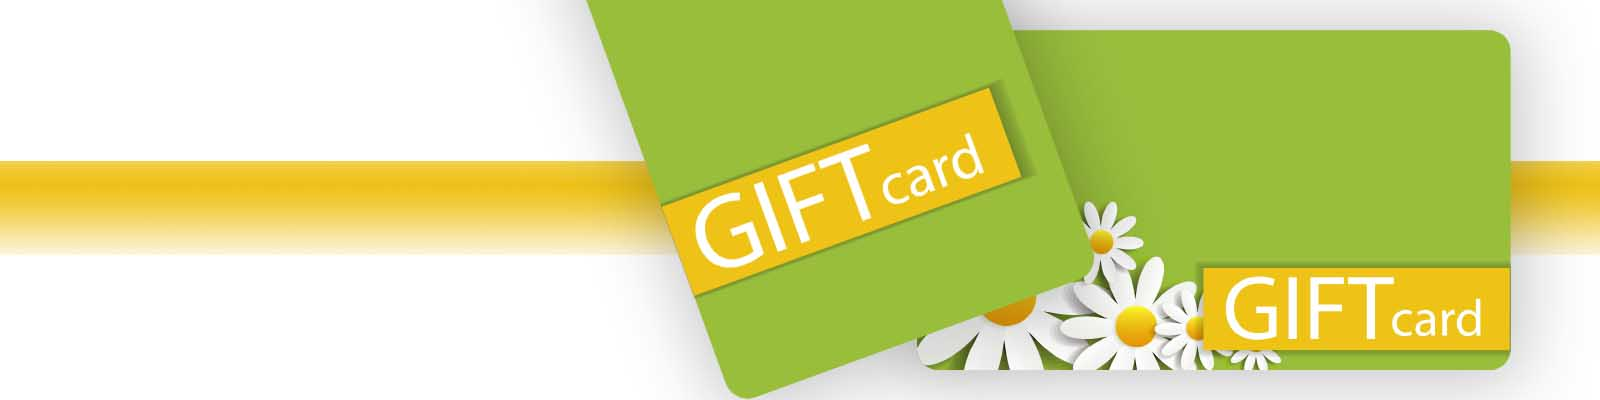 Gift Cards benefit Mission Outreach